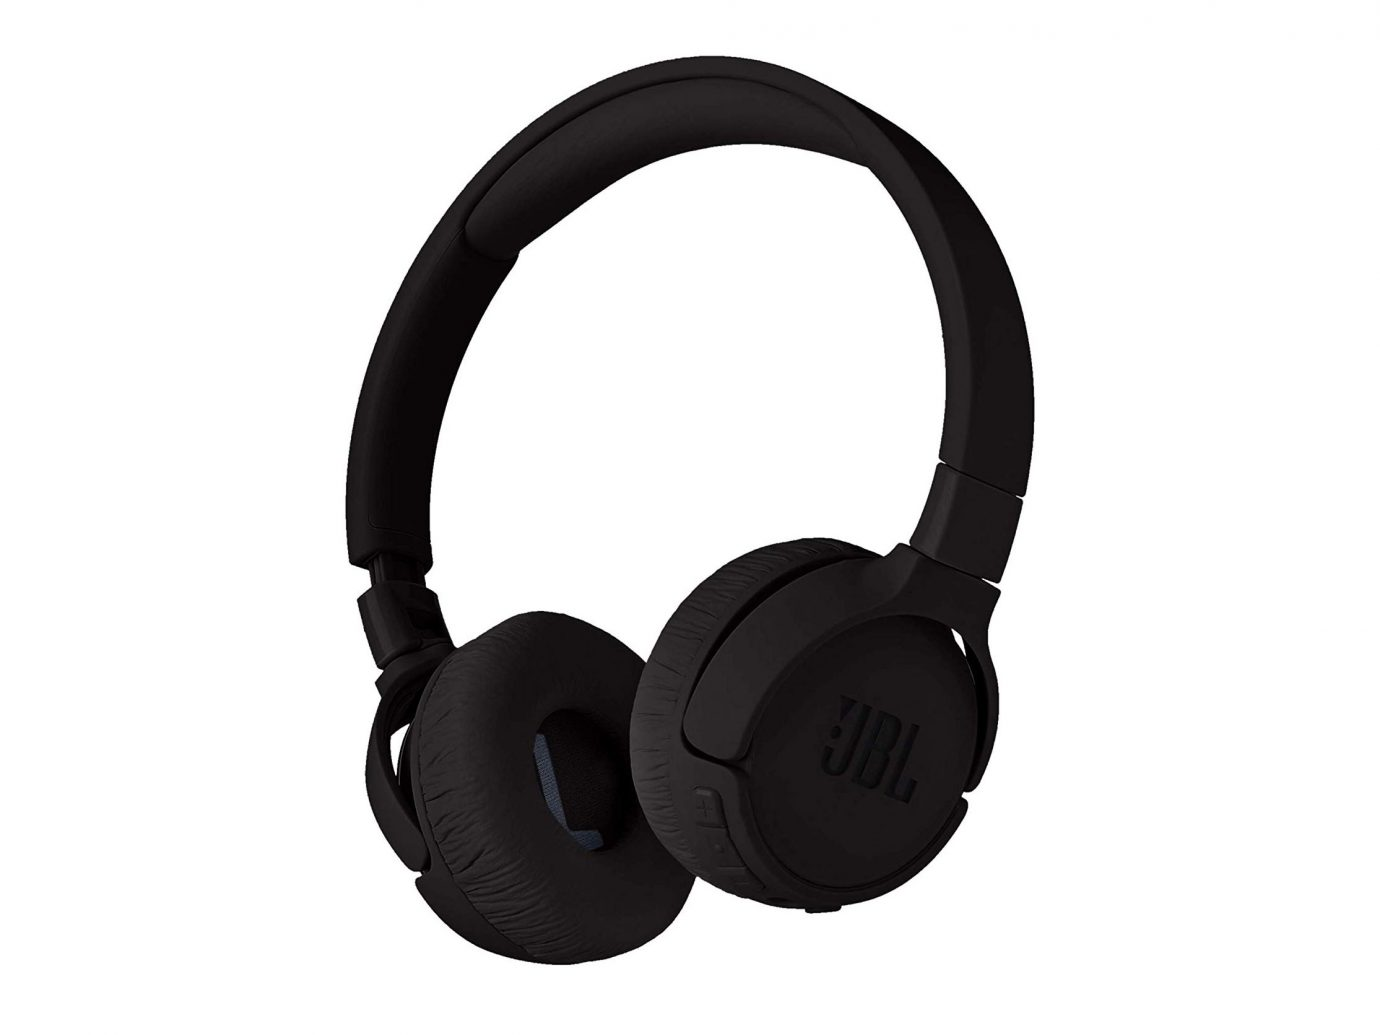 JBL TUNE 600 BTNC Wireless On-Ear Noise Canceling Headphones